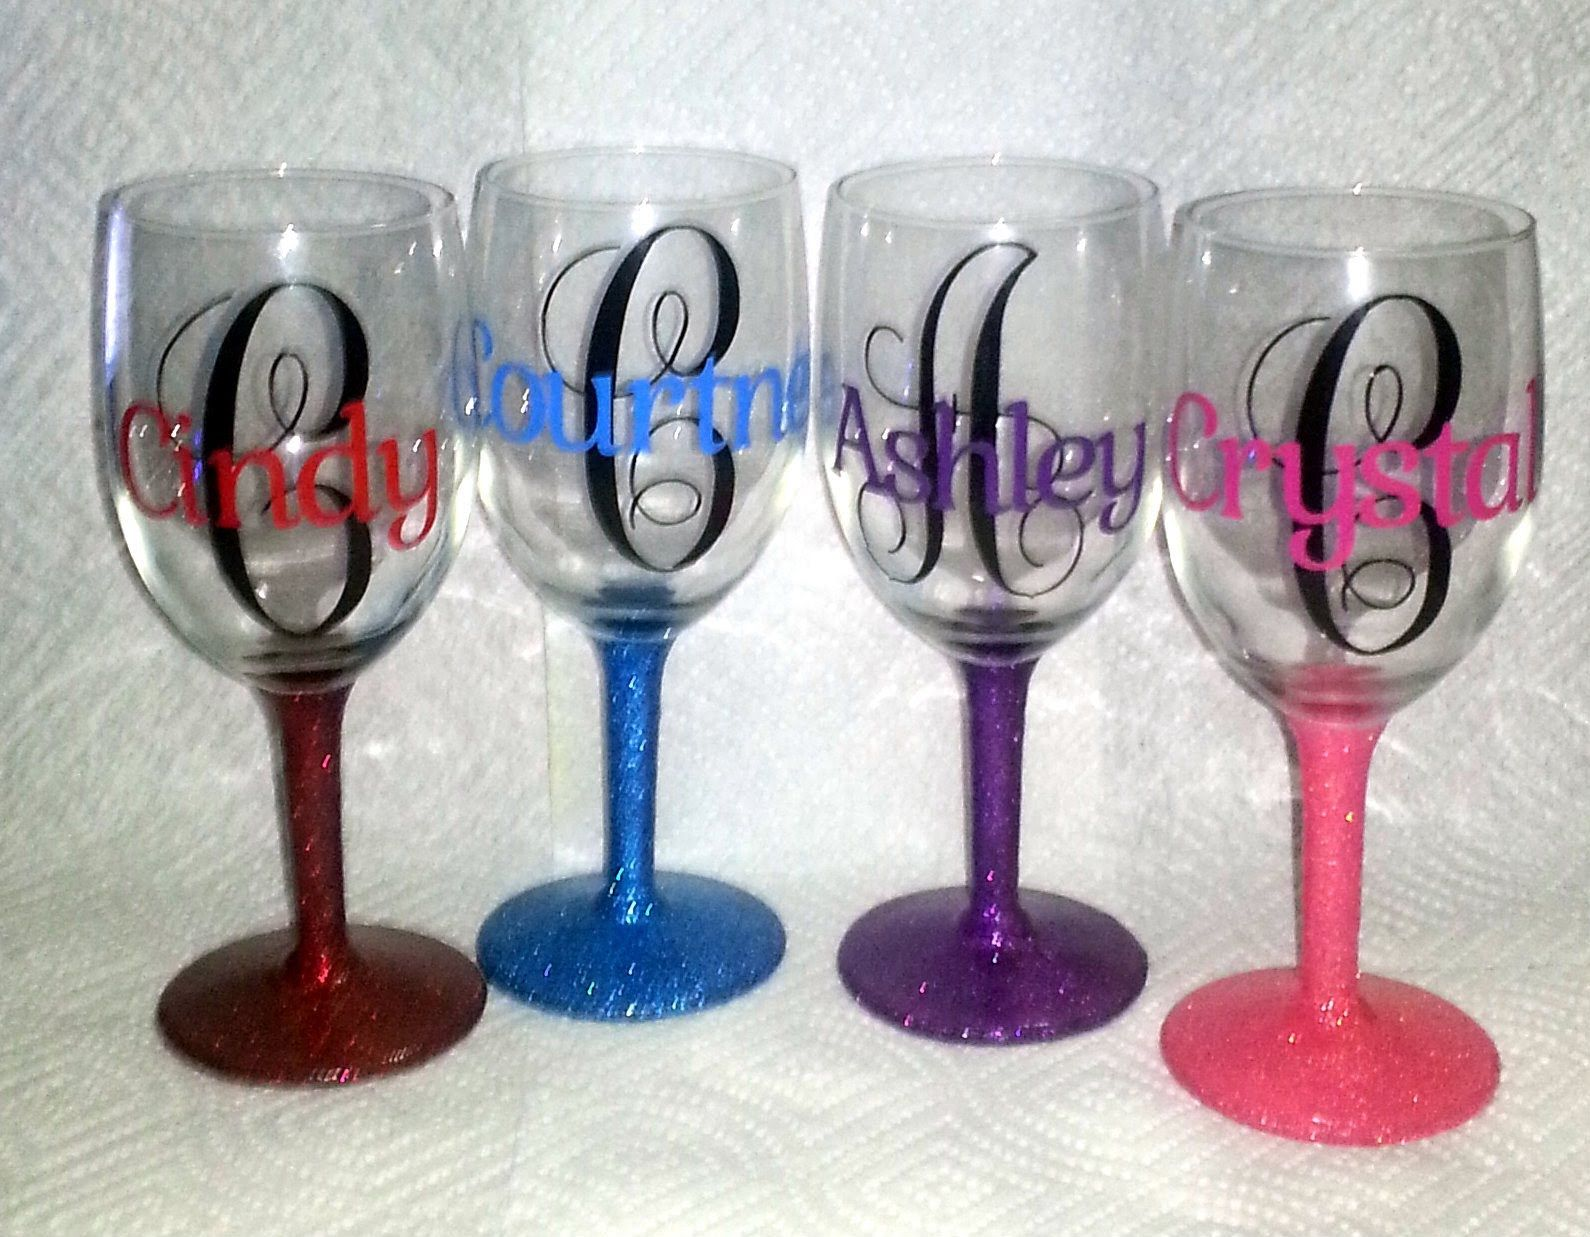 Wine Glass Design Ideas images of wine glass painting bybeccawordpresscompattern hand painted wine Find This Pin And More On Crafty Ideas Simple How To Make Glitter Wine Glasses